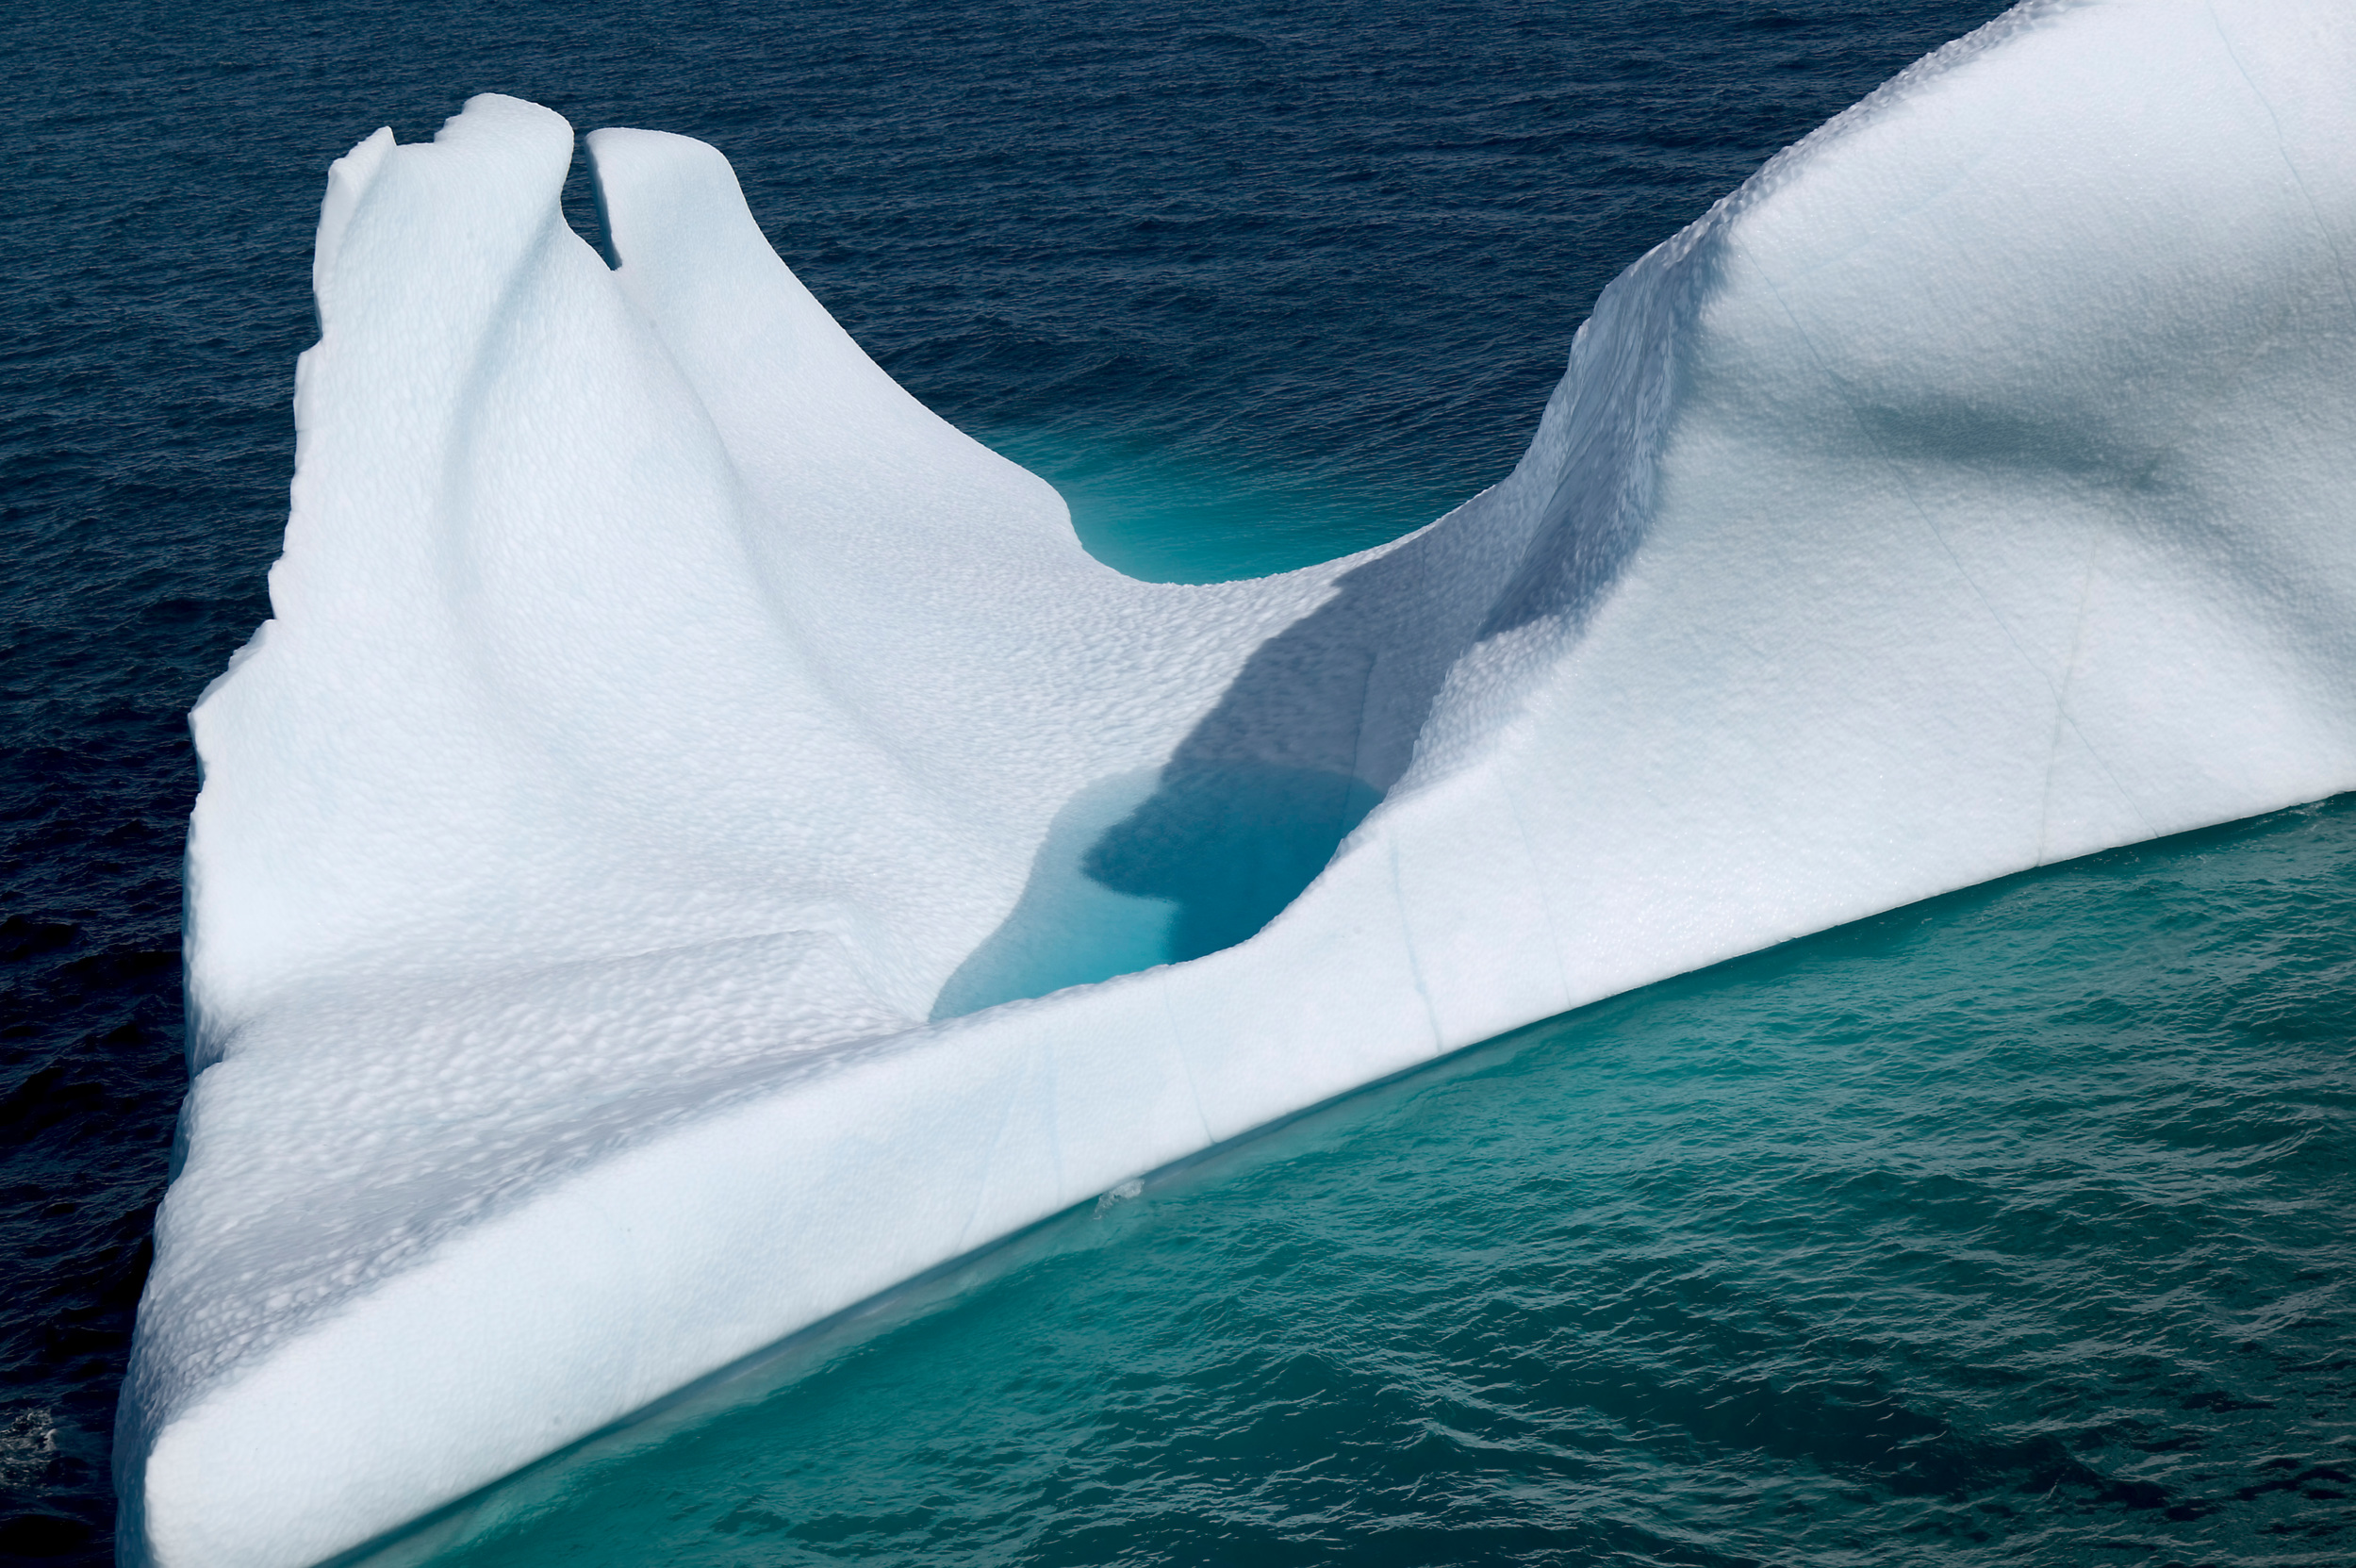 iceberg in clear blue water